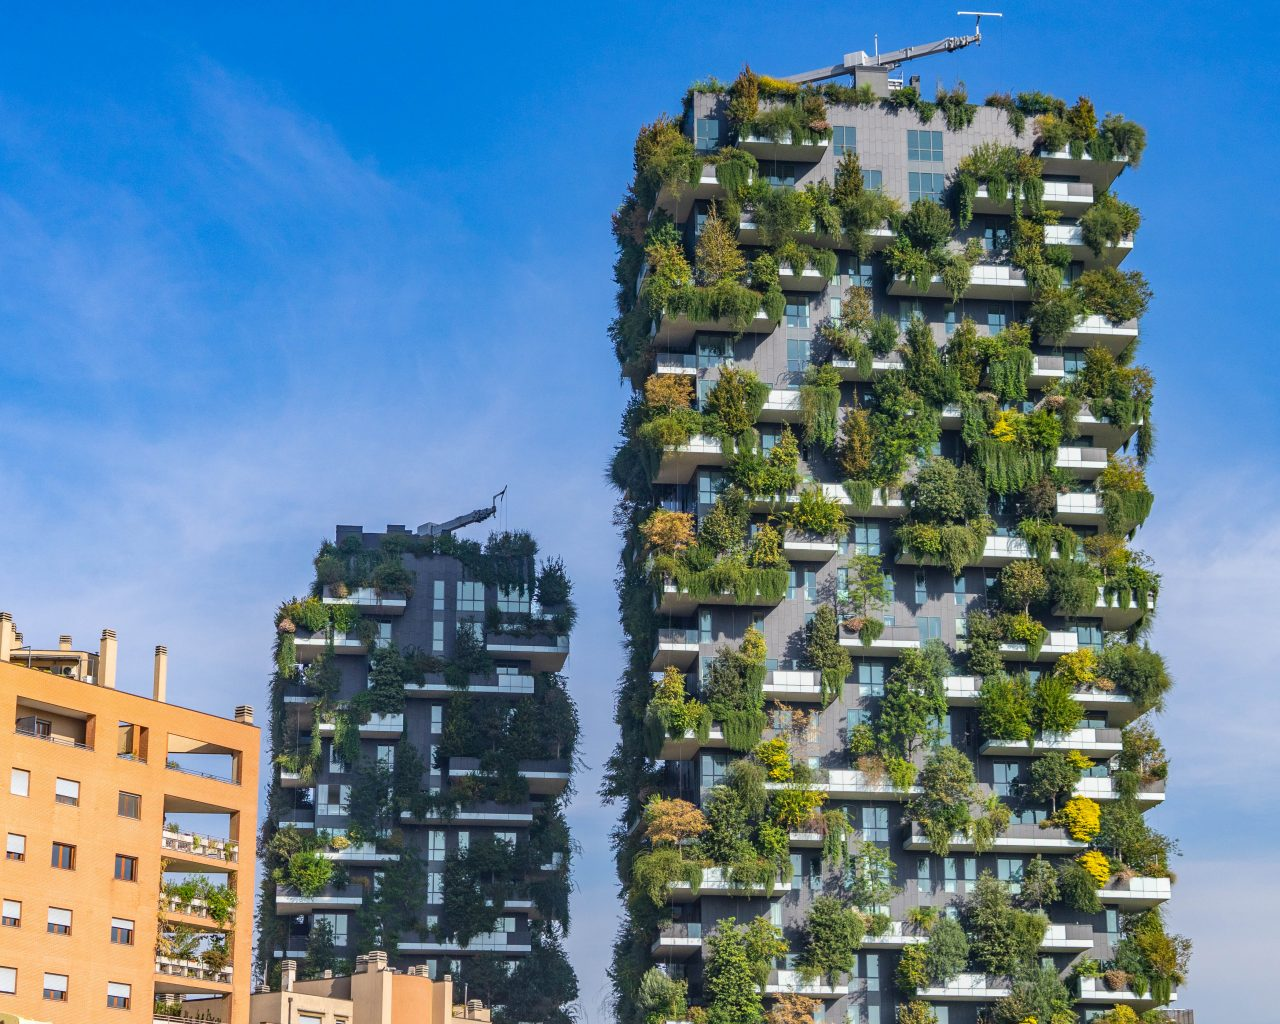 Bosco-verticale-in-Milaan